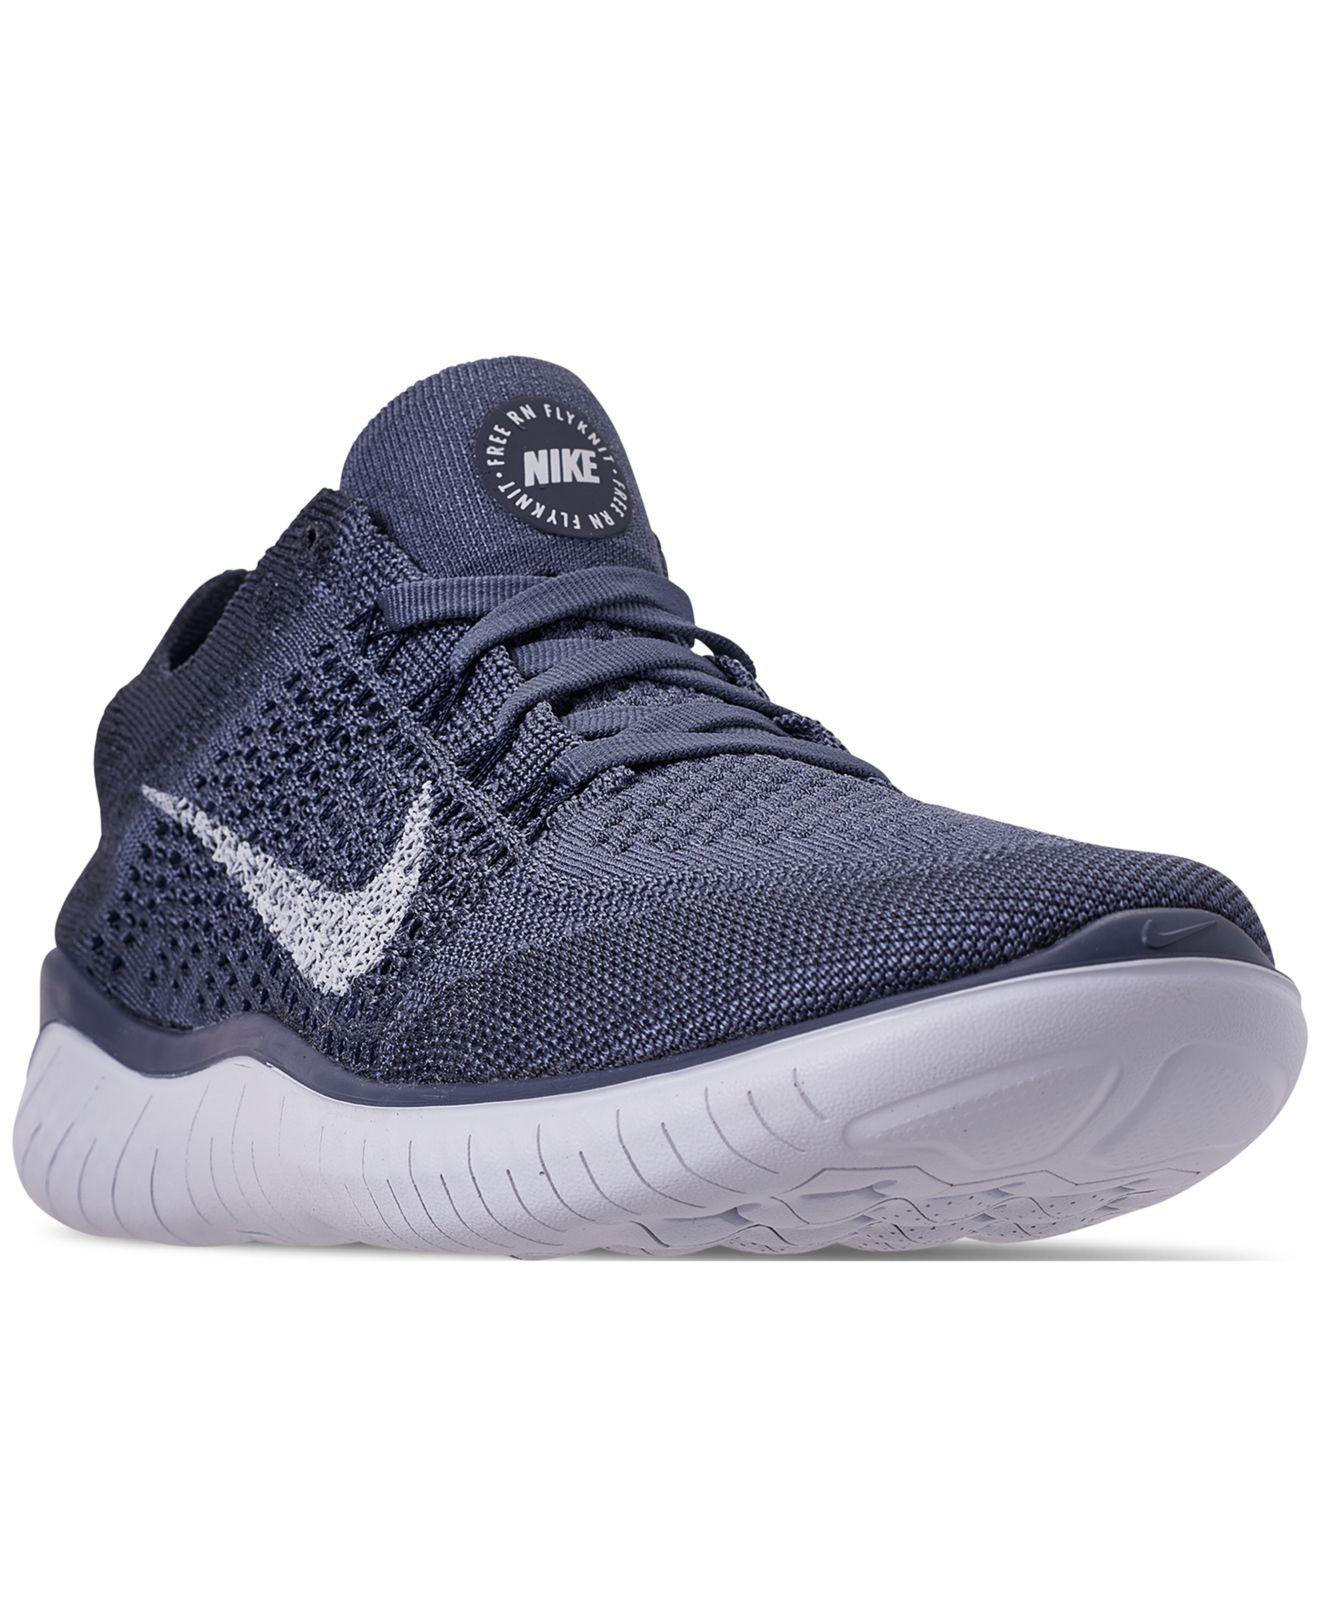 105daac2412a Lyst - Nike Free Rn Flyknit 2018 Running Sneakers From Finish Line ...